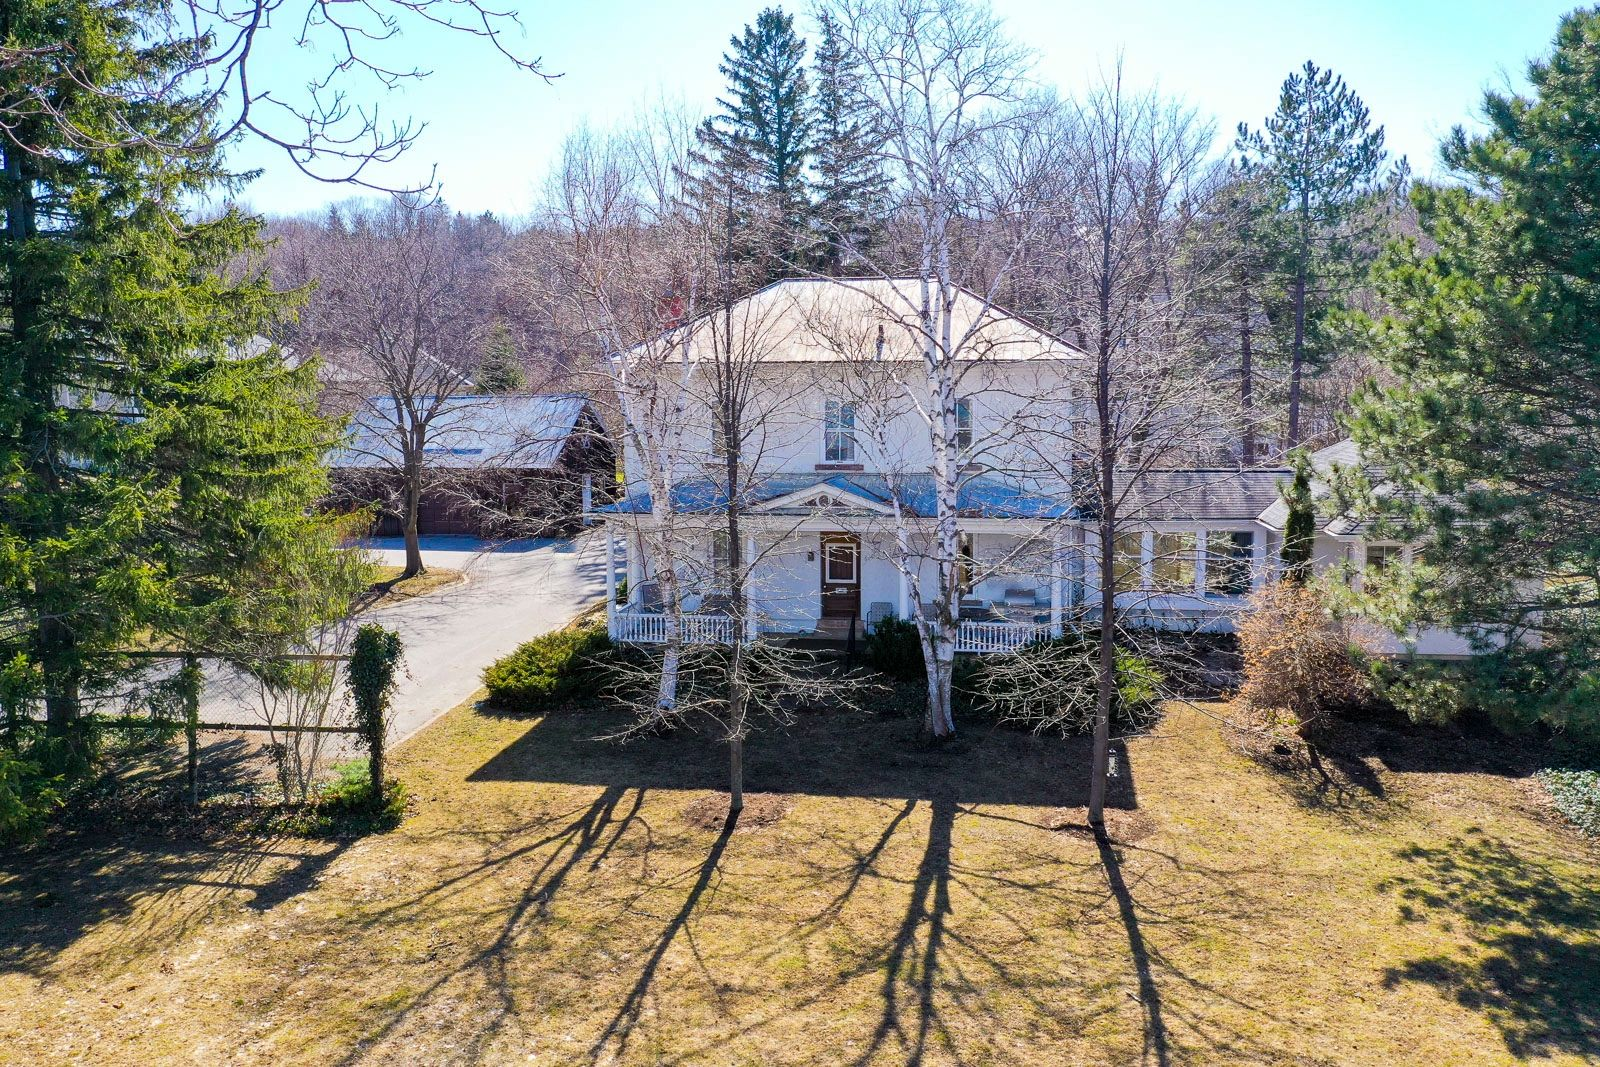 122 Lakeshore Road E, The Blue Mountains<span class='property-location-view'></span>